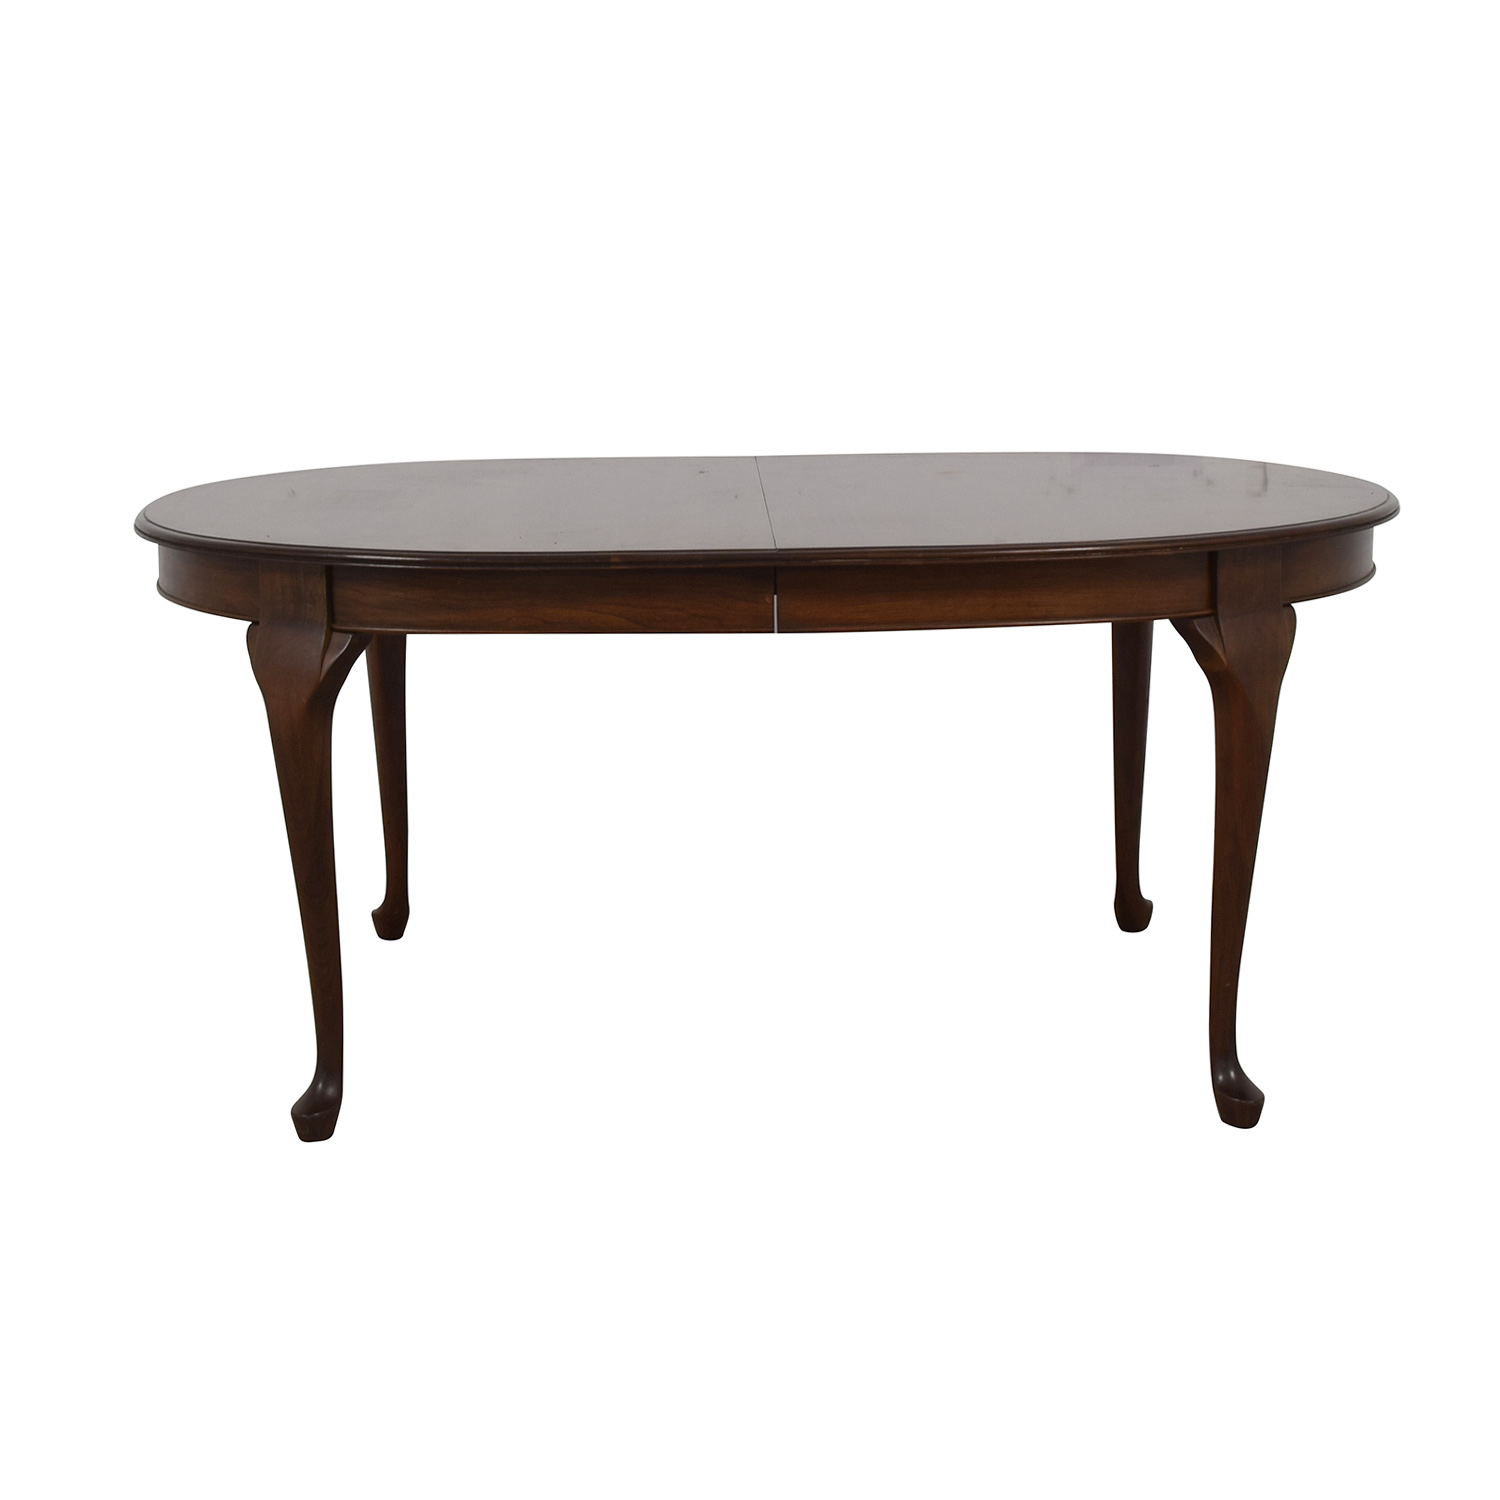 Pennsylvania House Extendable Wood Dining Table sale